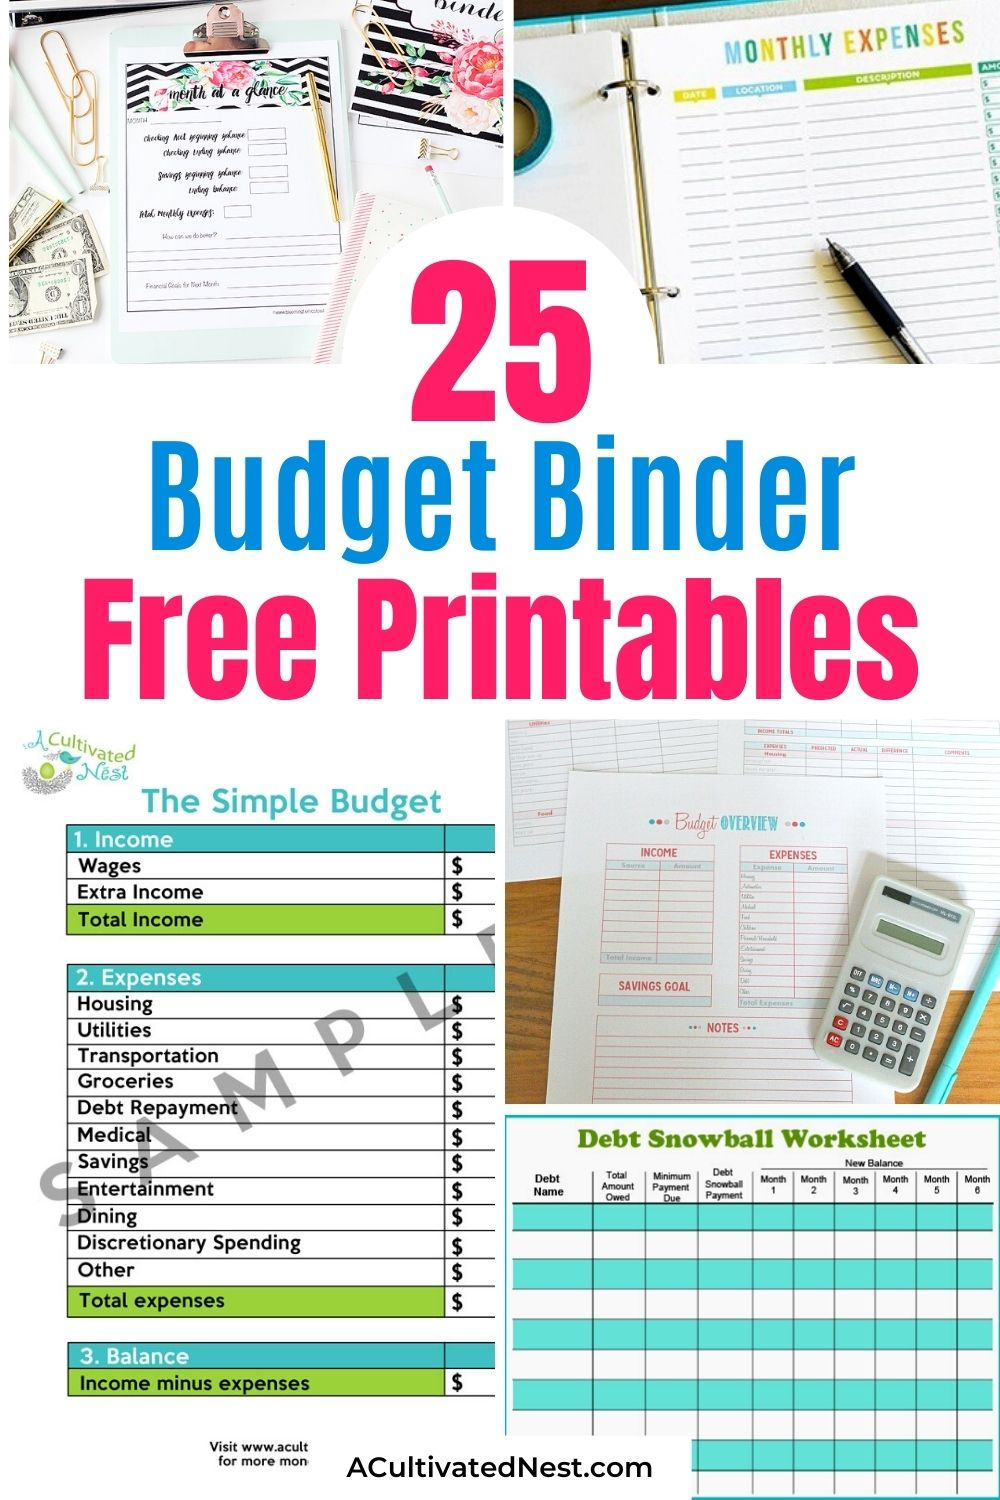 25 Free Budgeting Printables- If you want to start keeping track of your finances, you need a budget! These free printable budget worksheets are a great way to get started! | Living on a budget, frugal living, budget binder, financial printables #freePrintables #budget #moneySavingTips #financialPrintables #ACultivatedNest